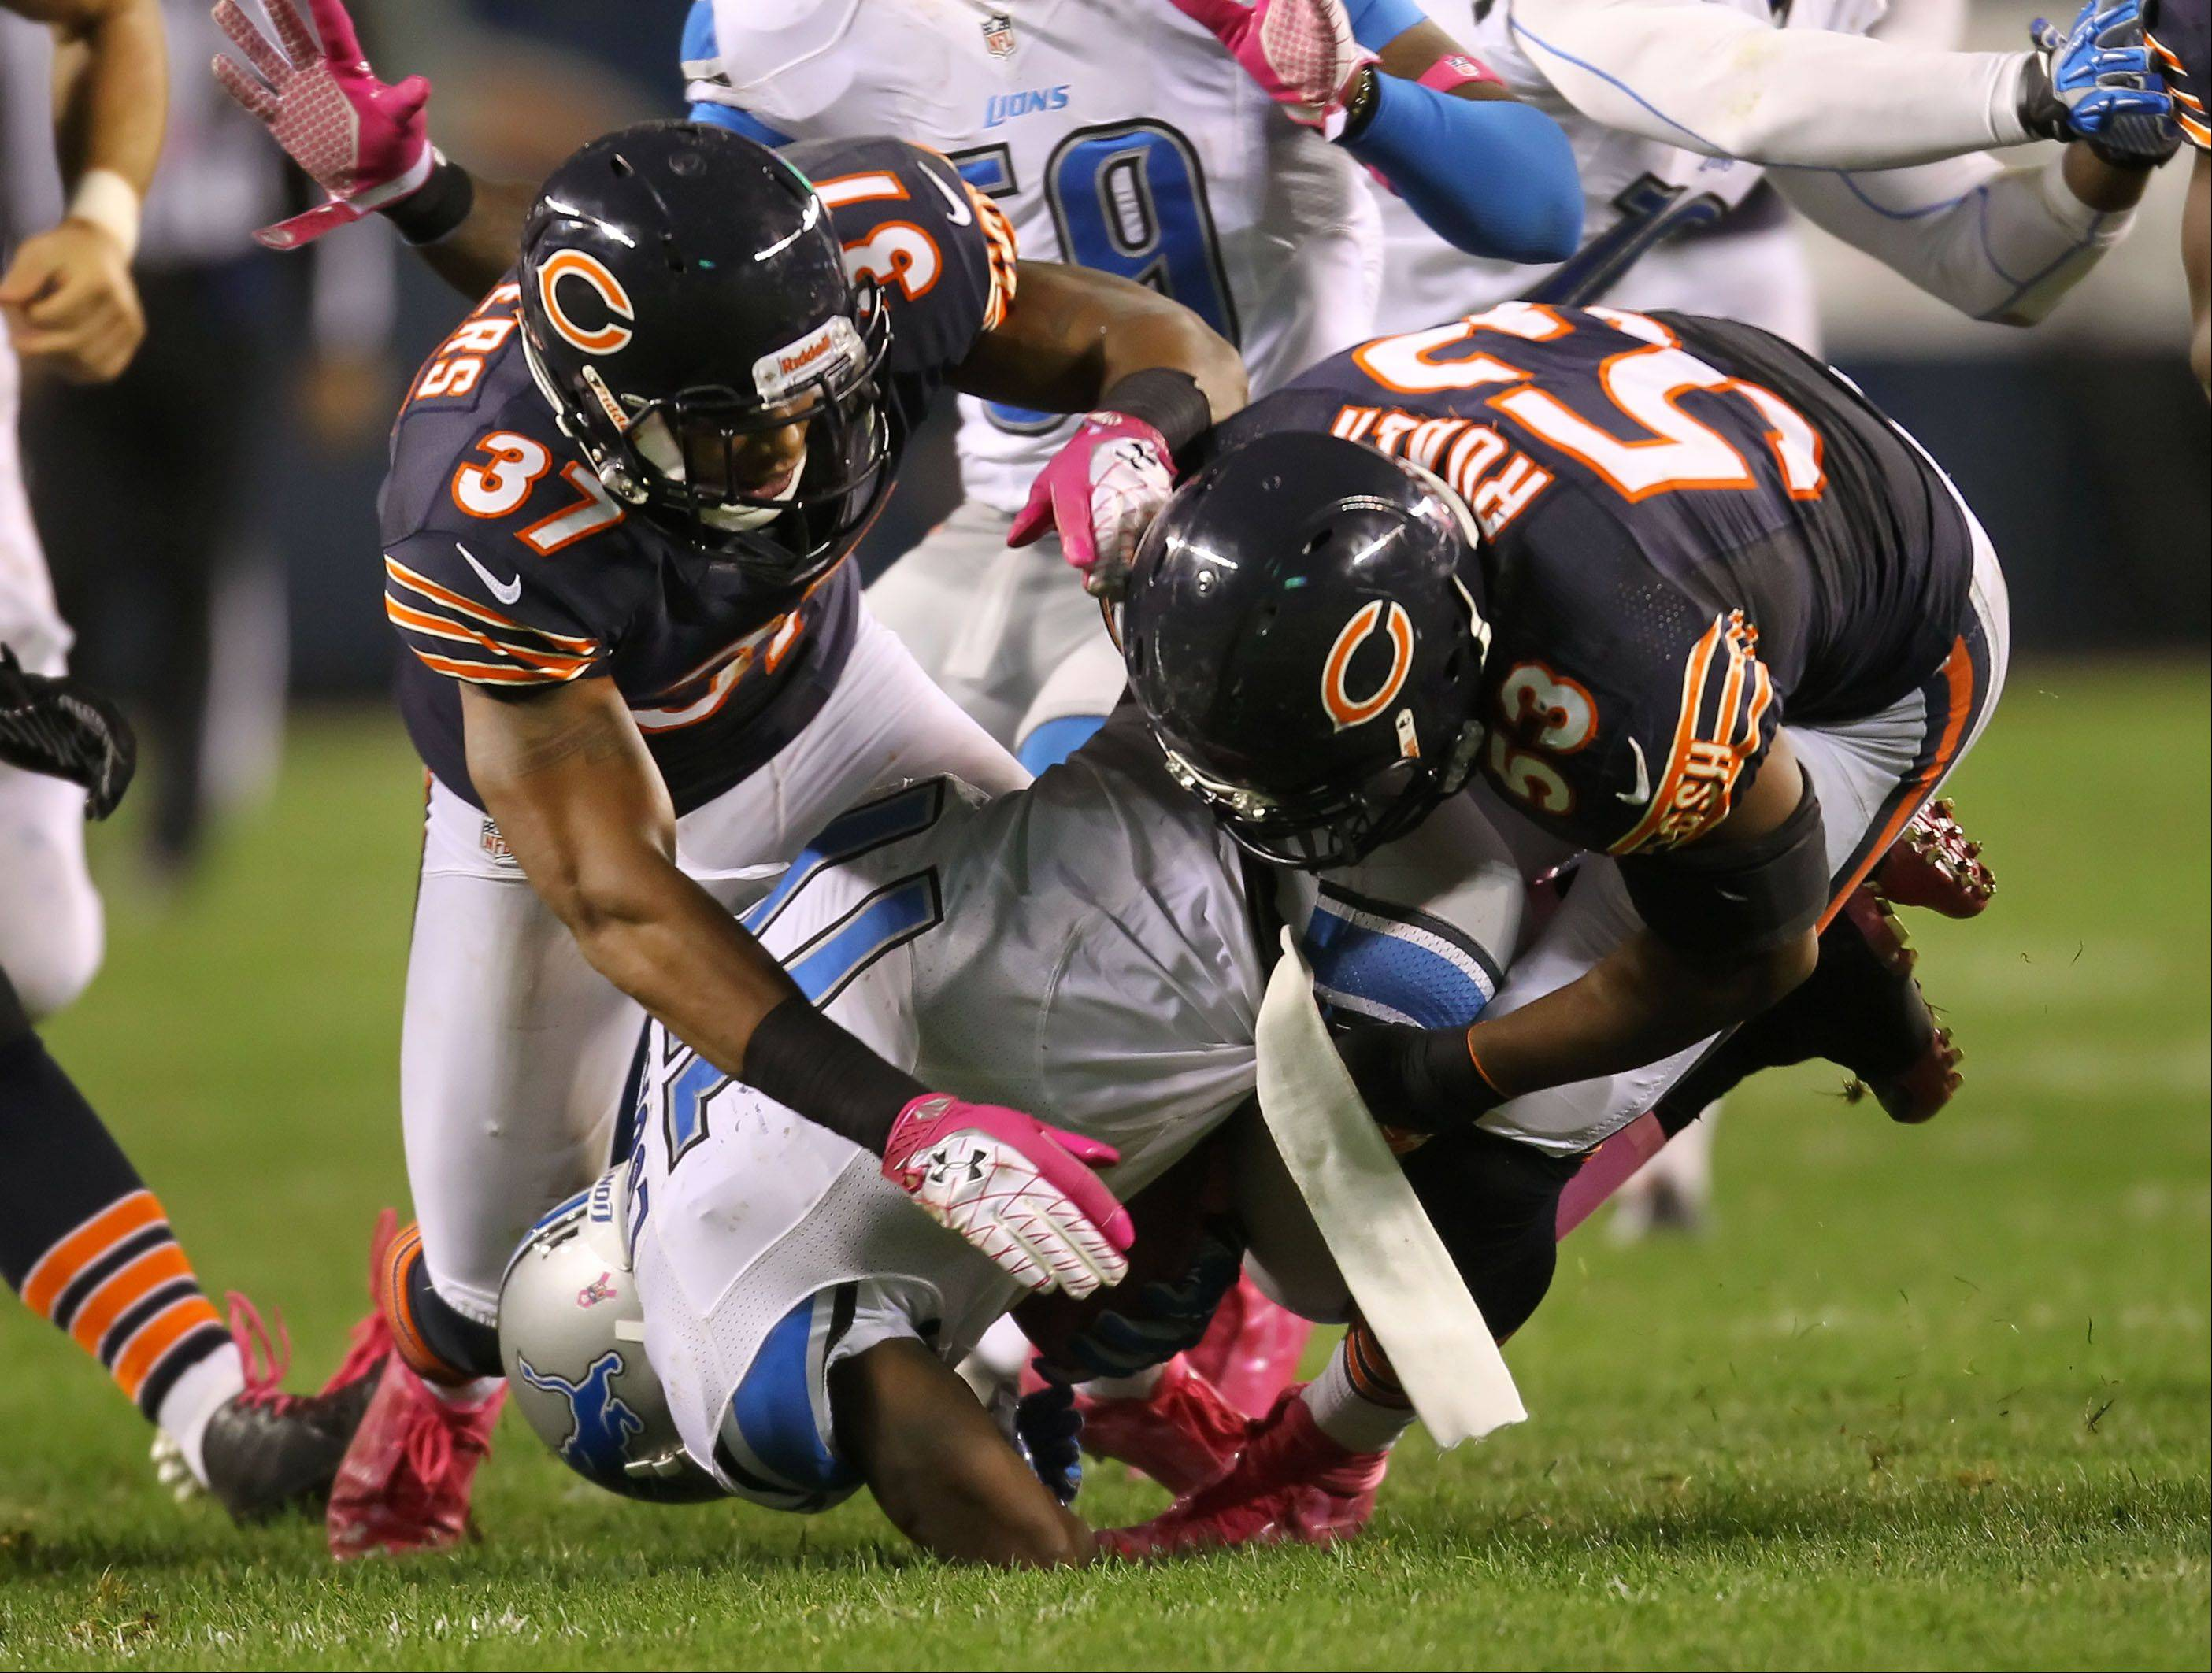 Chicago Bears free safety Anthony Walters and Chicago Bears outside linebacker Nick Roach tackle Detroit Lions wide receiver Stefan Logan.